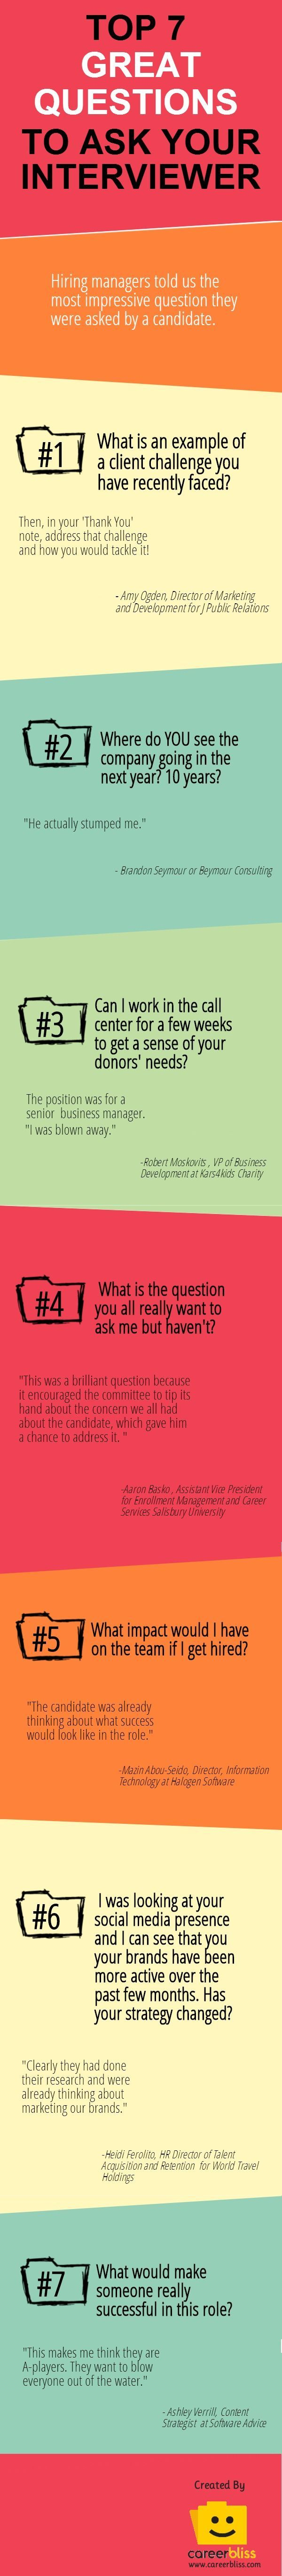 7 Great Questions to Ask in an #Interview | #Resources